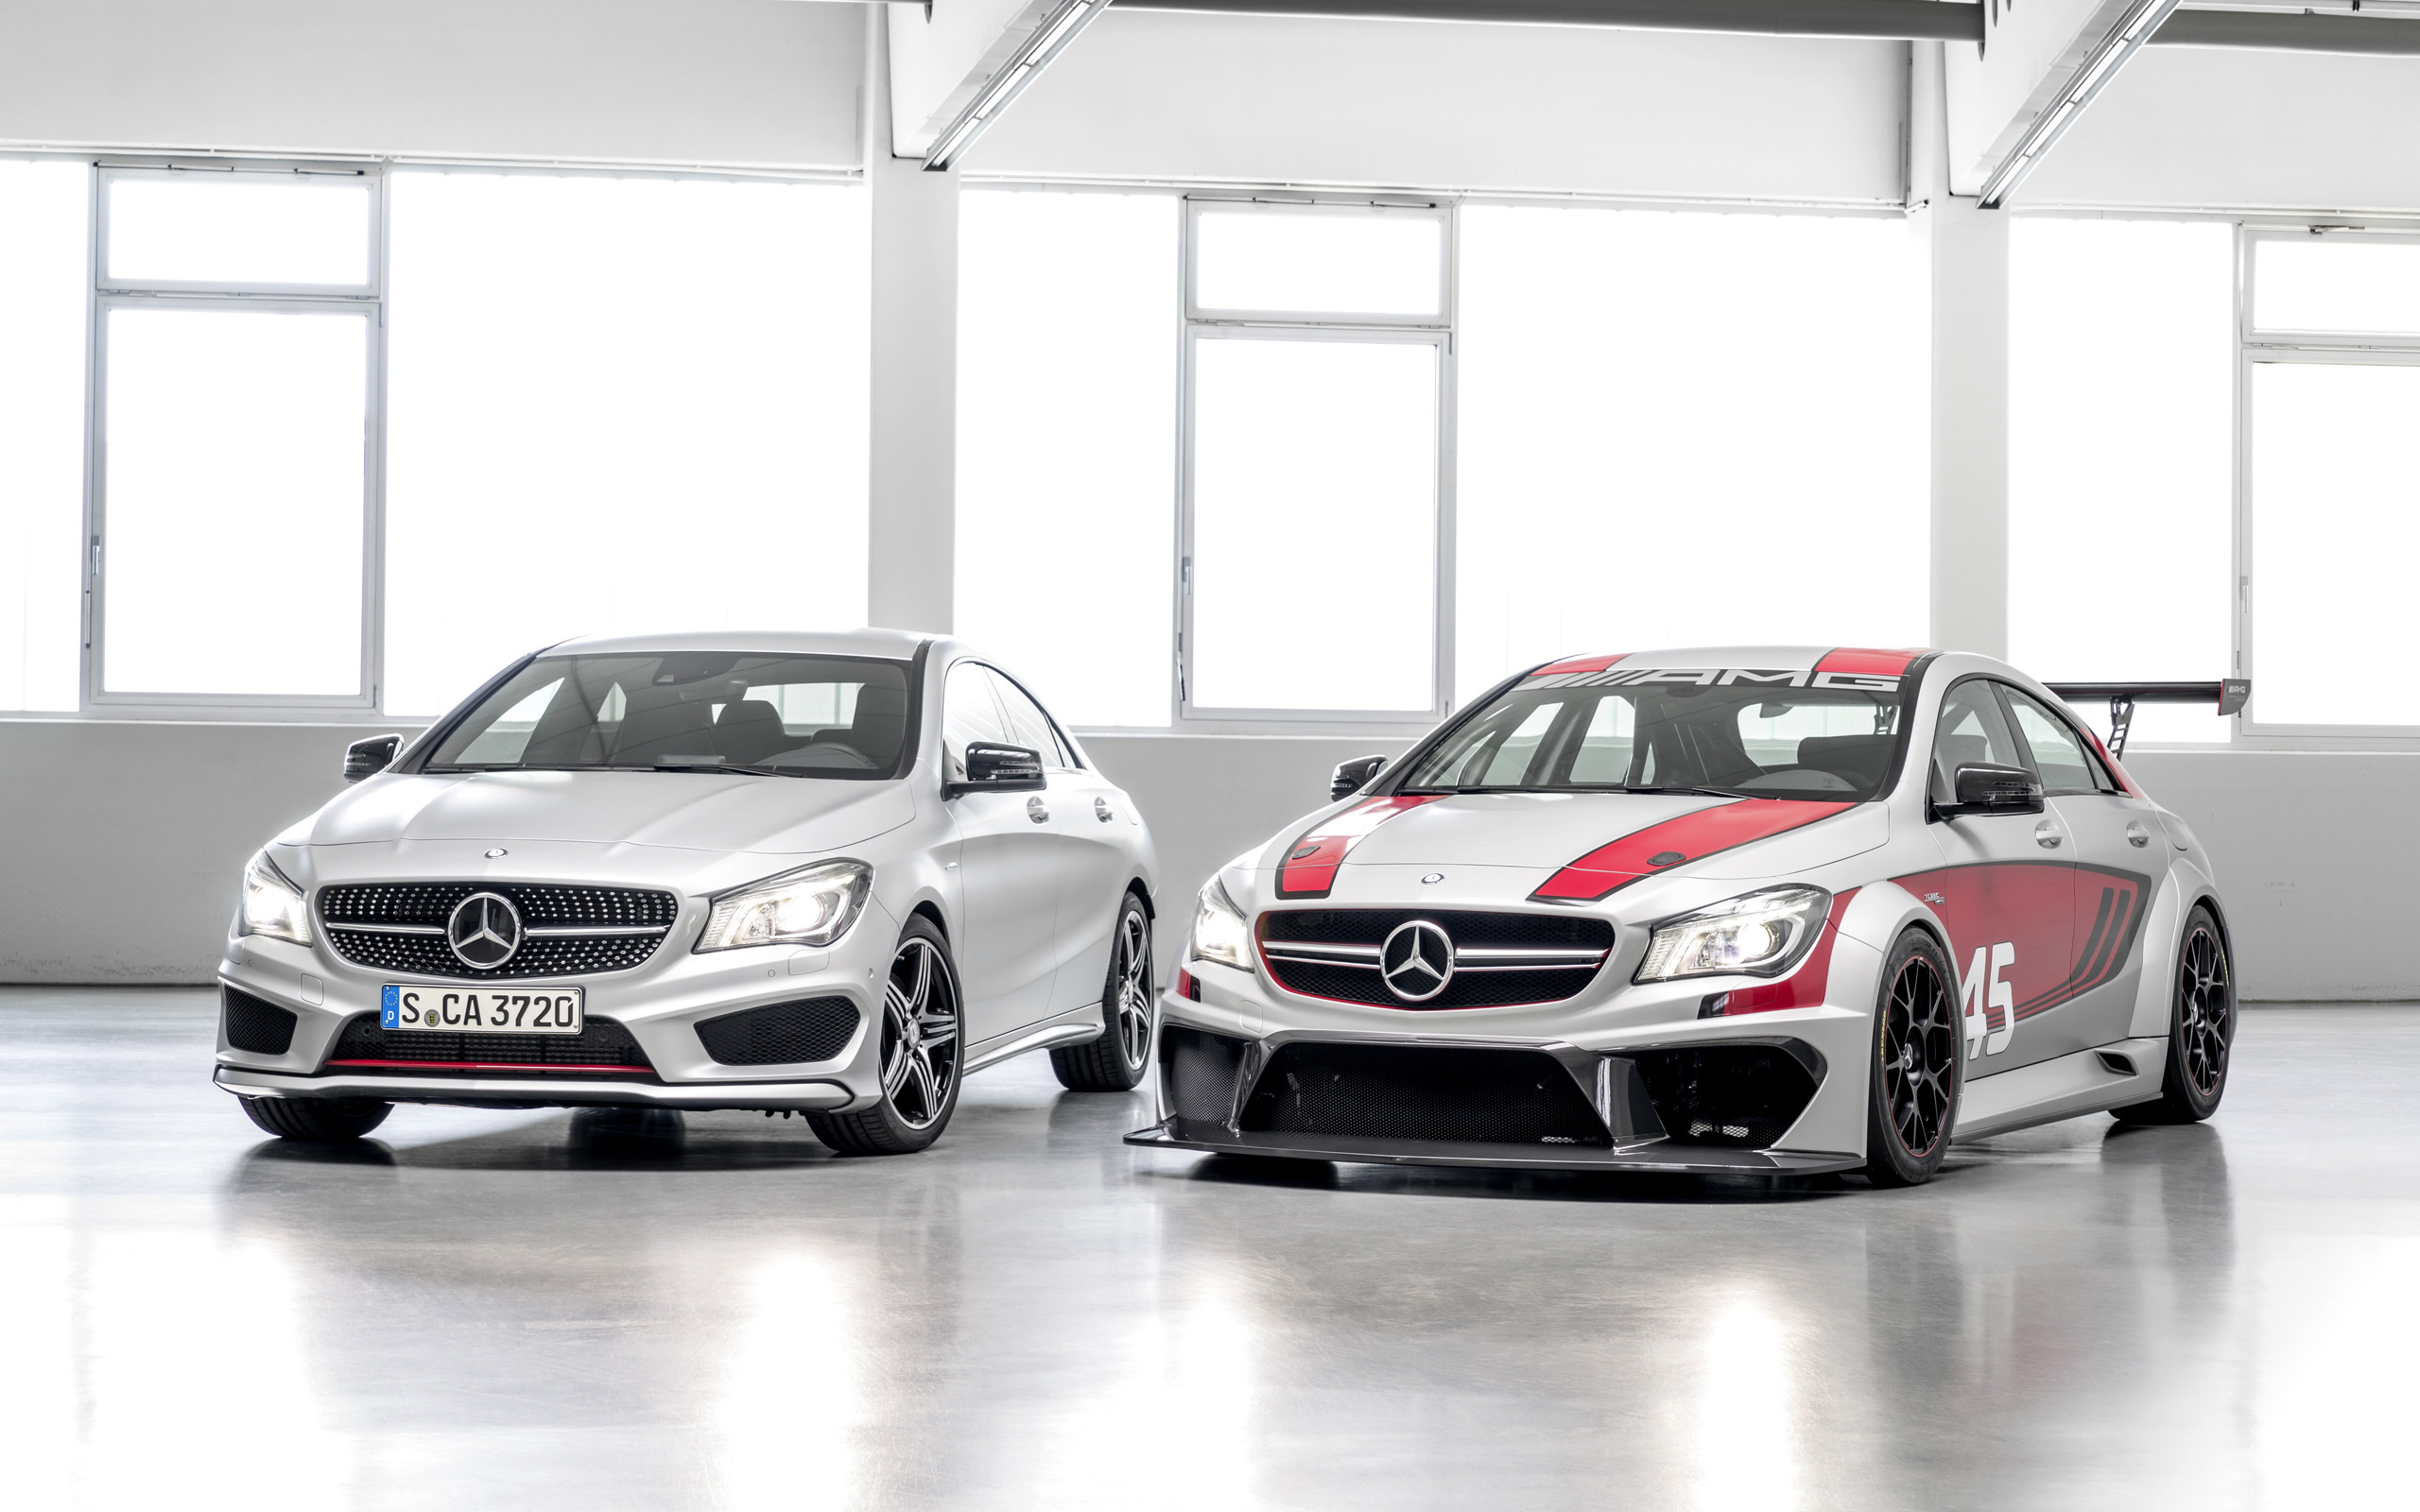 2014 mercedes benz cla 45 amg racing series wallpaper hd for Mercedes benz race